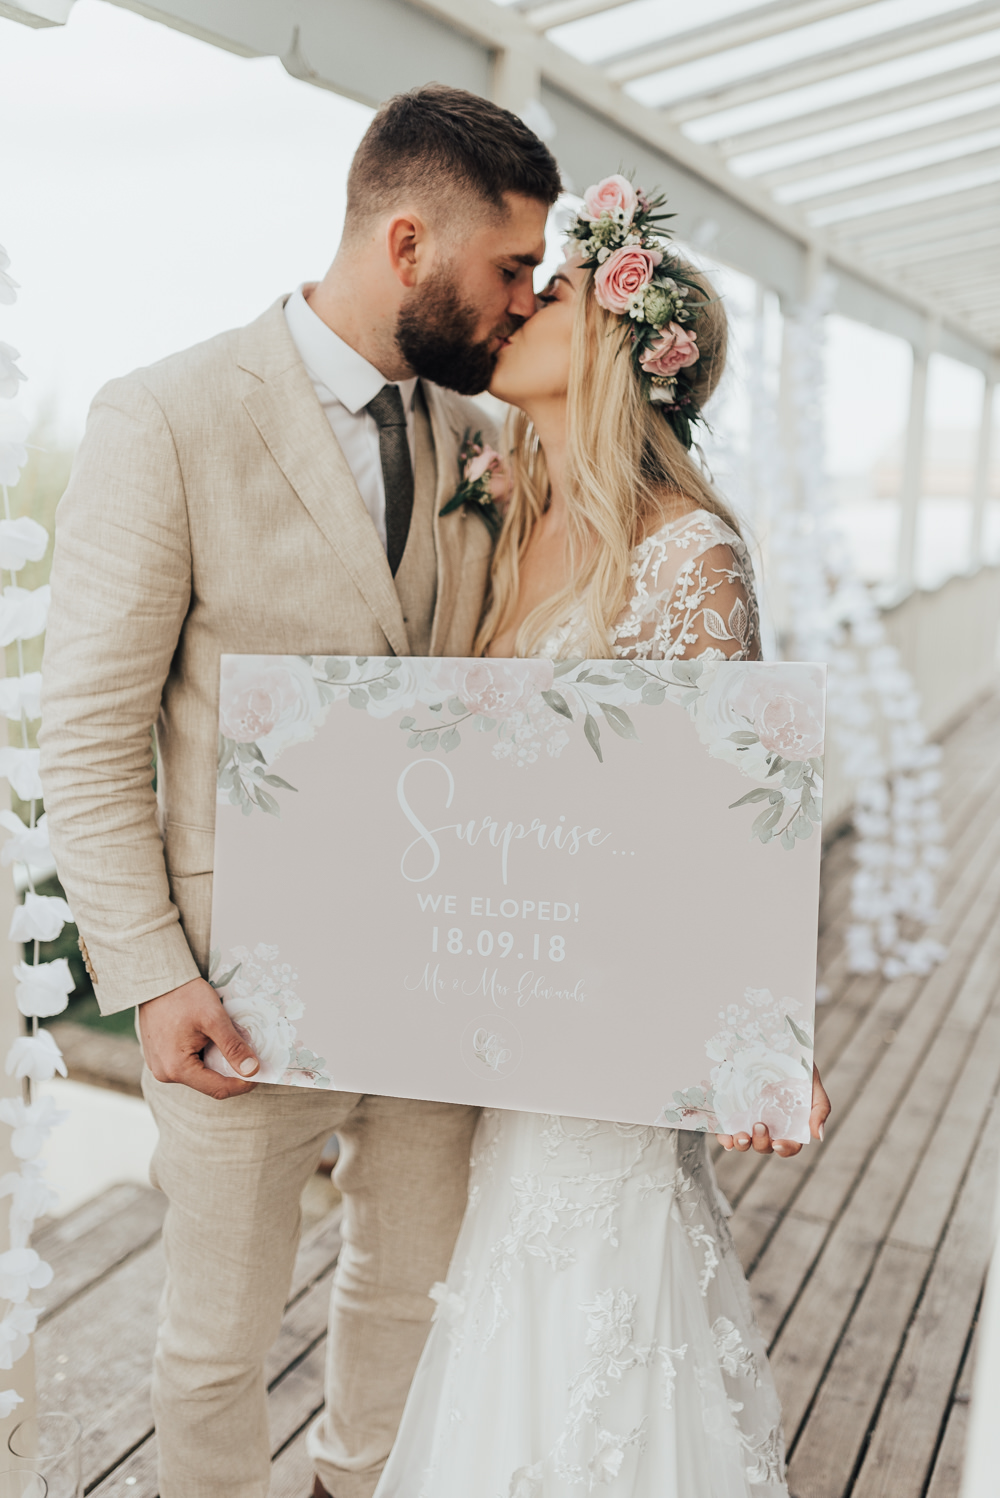 Pretty Floral Stationery Sign Signage We Eloped Announcement Beacon House Wedding Elopement Rebecca Carpenter Photography